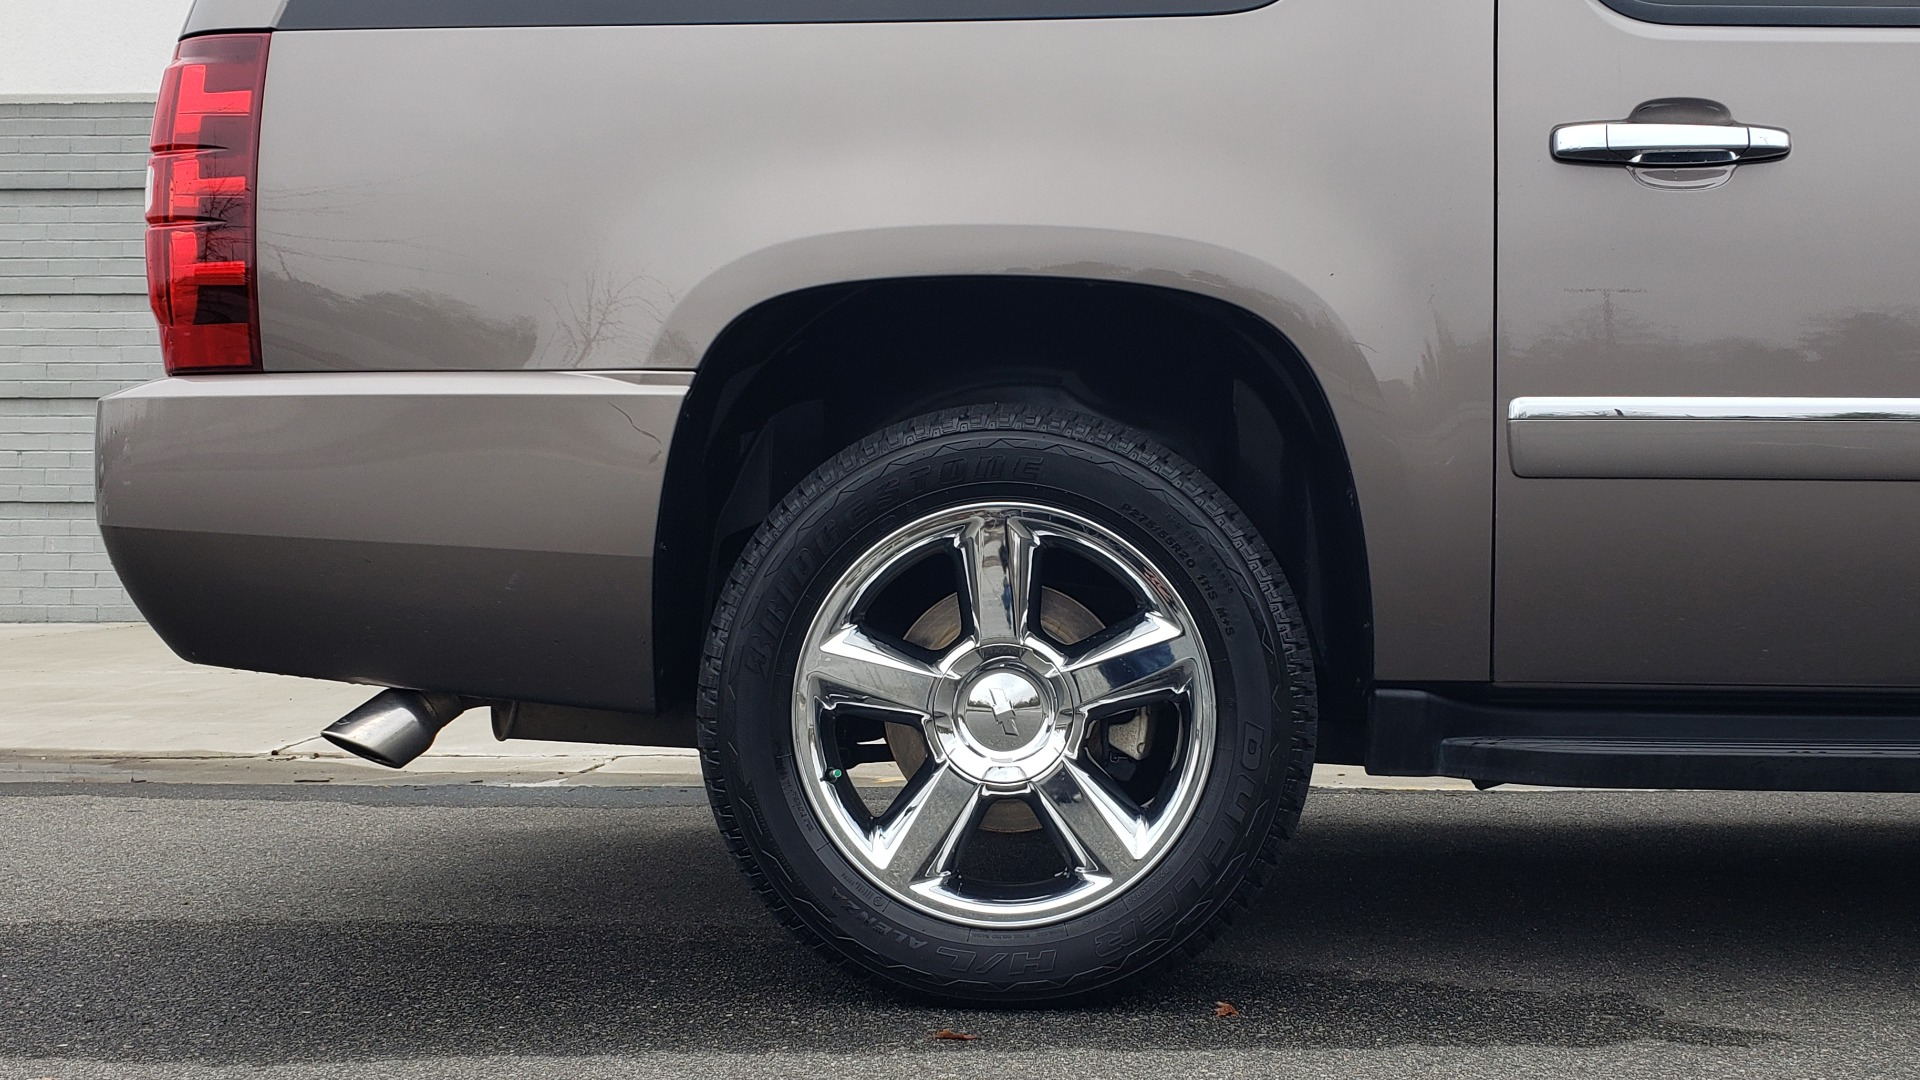 Used 2014 Chevrolet SUBURBAN LTZ / 4WD / ENTERTAINMENT / NAV / SUNROOF / TRAILER PKG for sale Sold at Formula Imports in Charlotte NC 28227 81